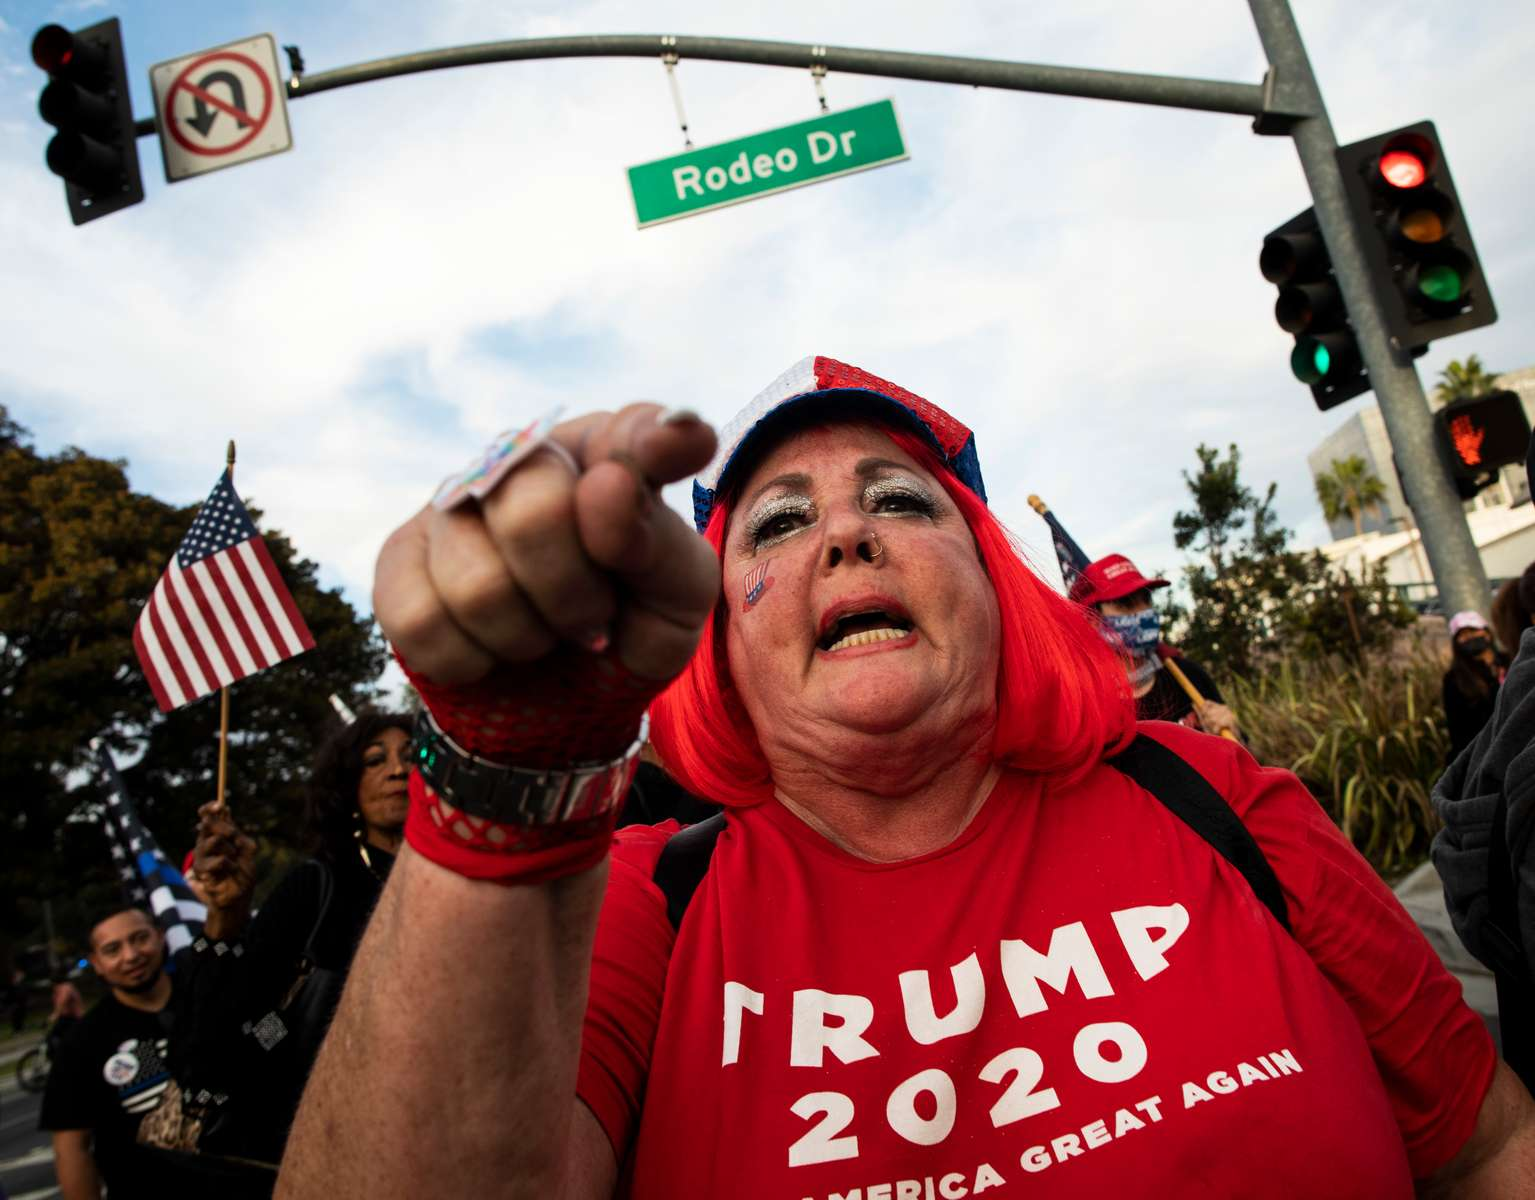 Supporters watch the plane Air Force One landing before a Make America Great Again rally of US President Donald Trump on October 28, 2020 in Bullhead, Arizona.